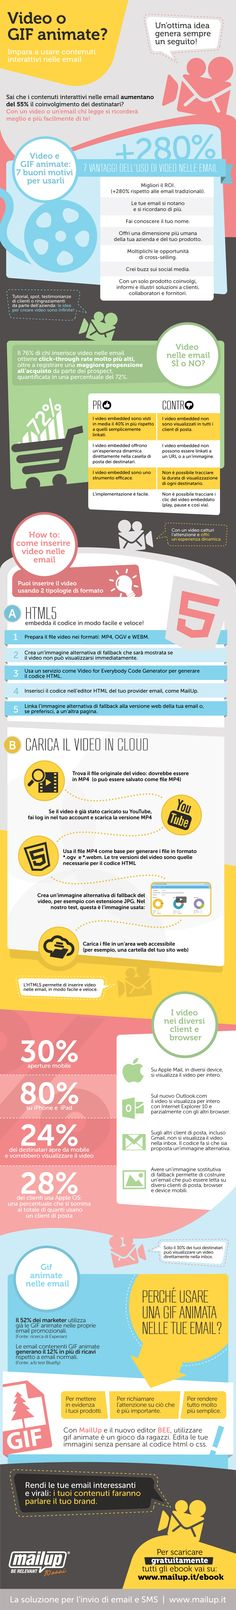 Video e GIF animate nelle Email - http://bit.ly/infogragifemail